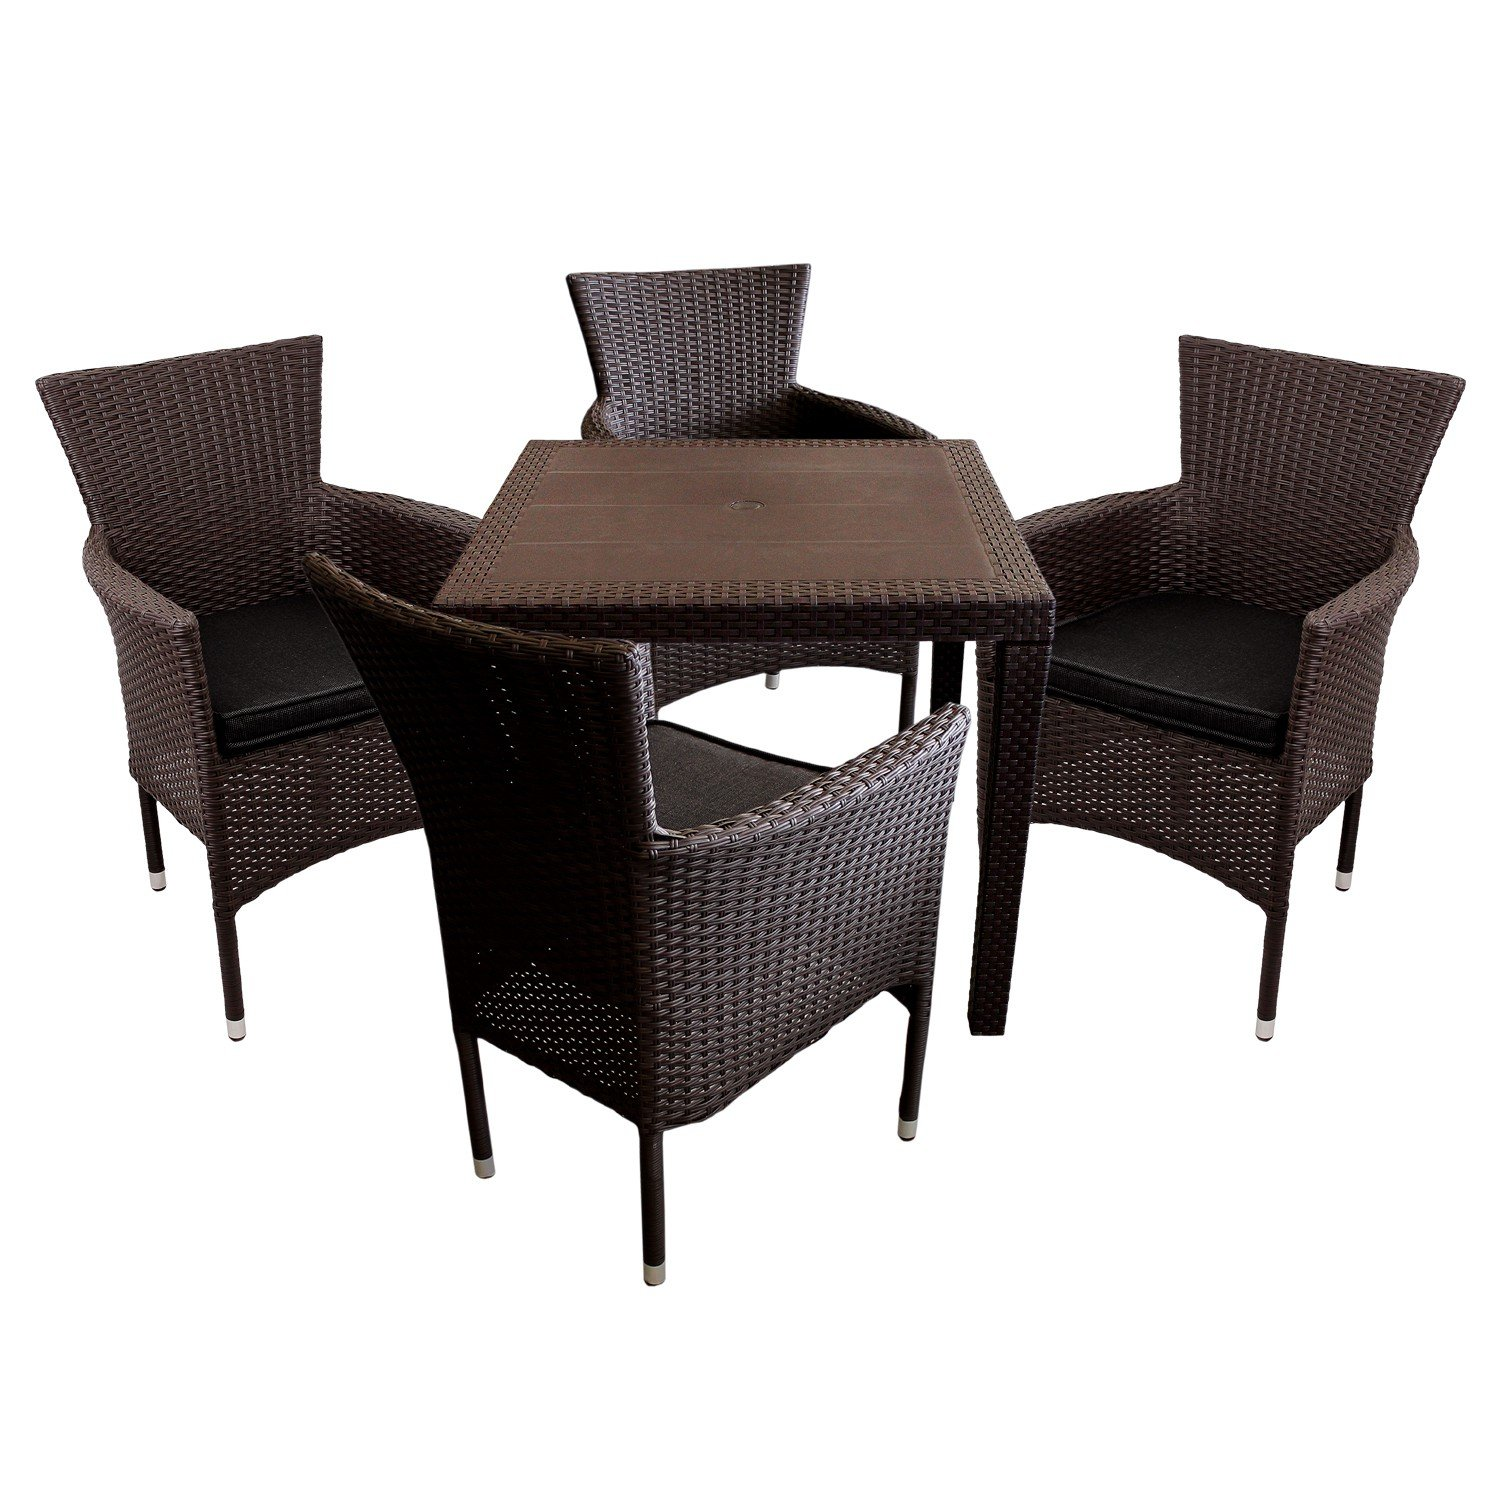 5tlg balkonm bel set gartentisch vollkunststoff rattan. Black Bedroom Furniture Sets. Home Design Ideas